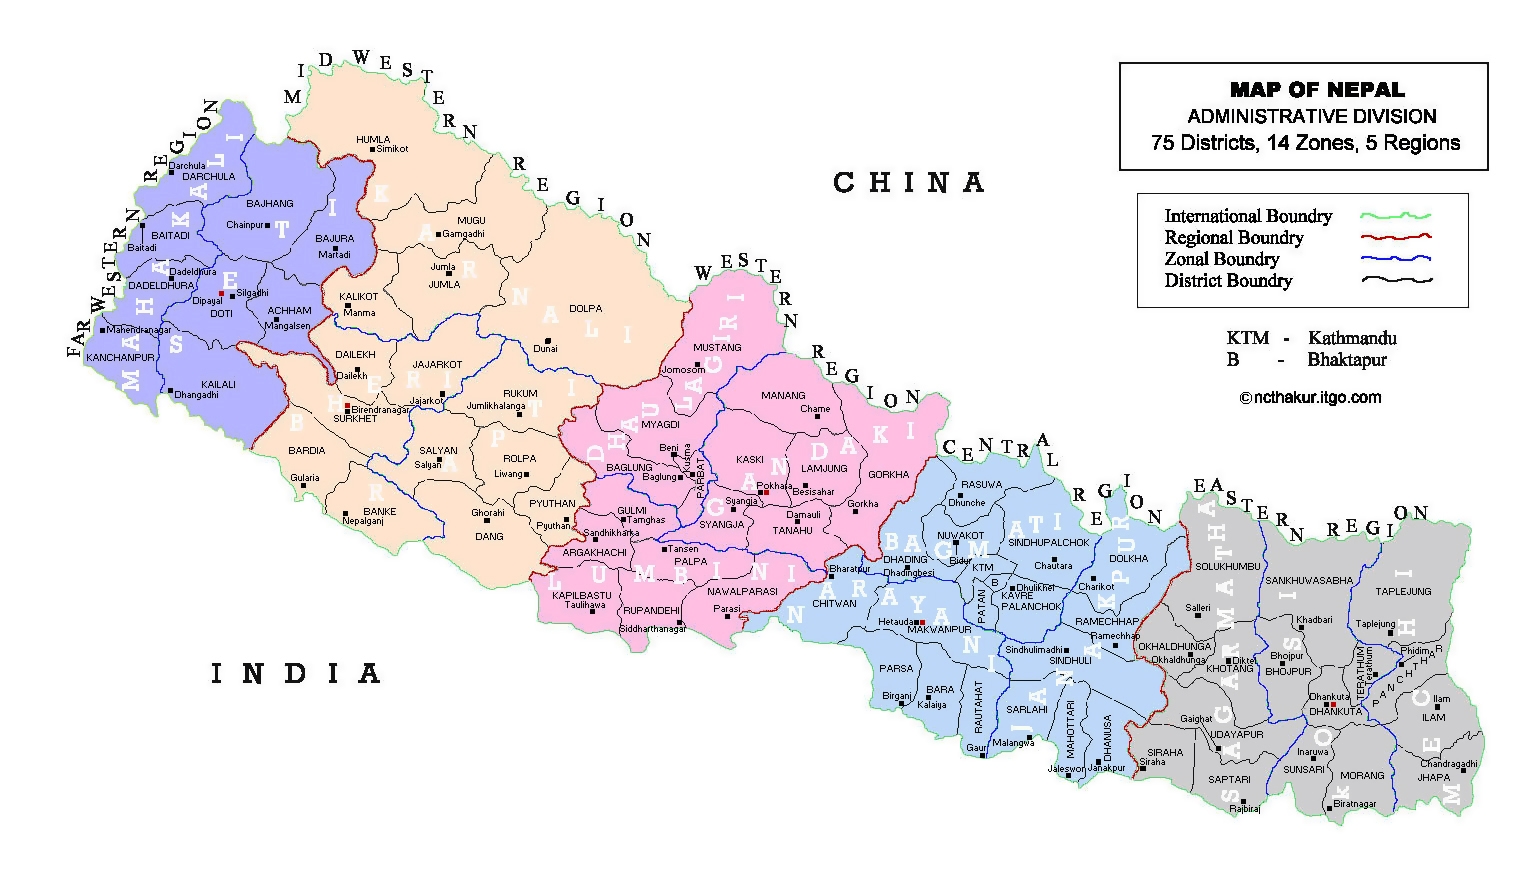 Detailed administrative divisions map of Nepal | Nepal ...